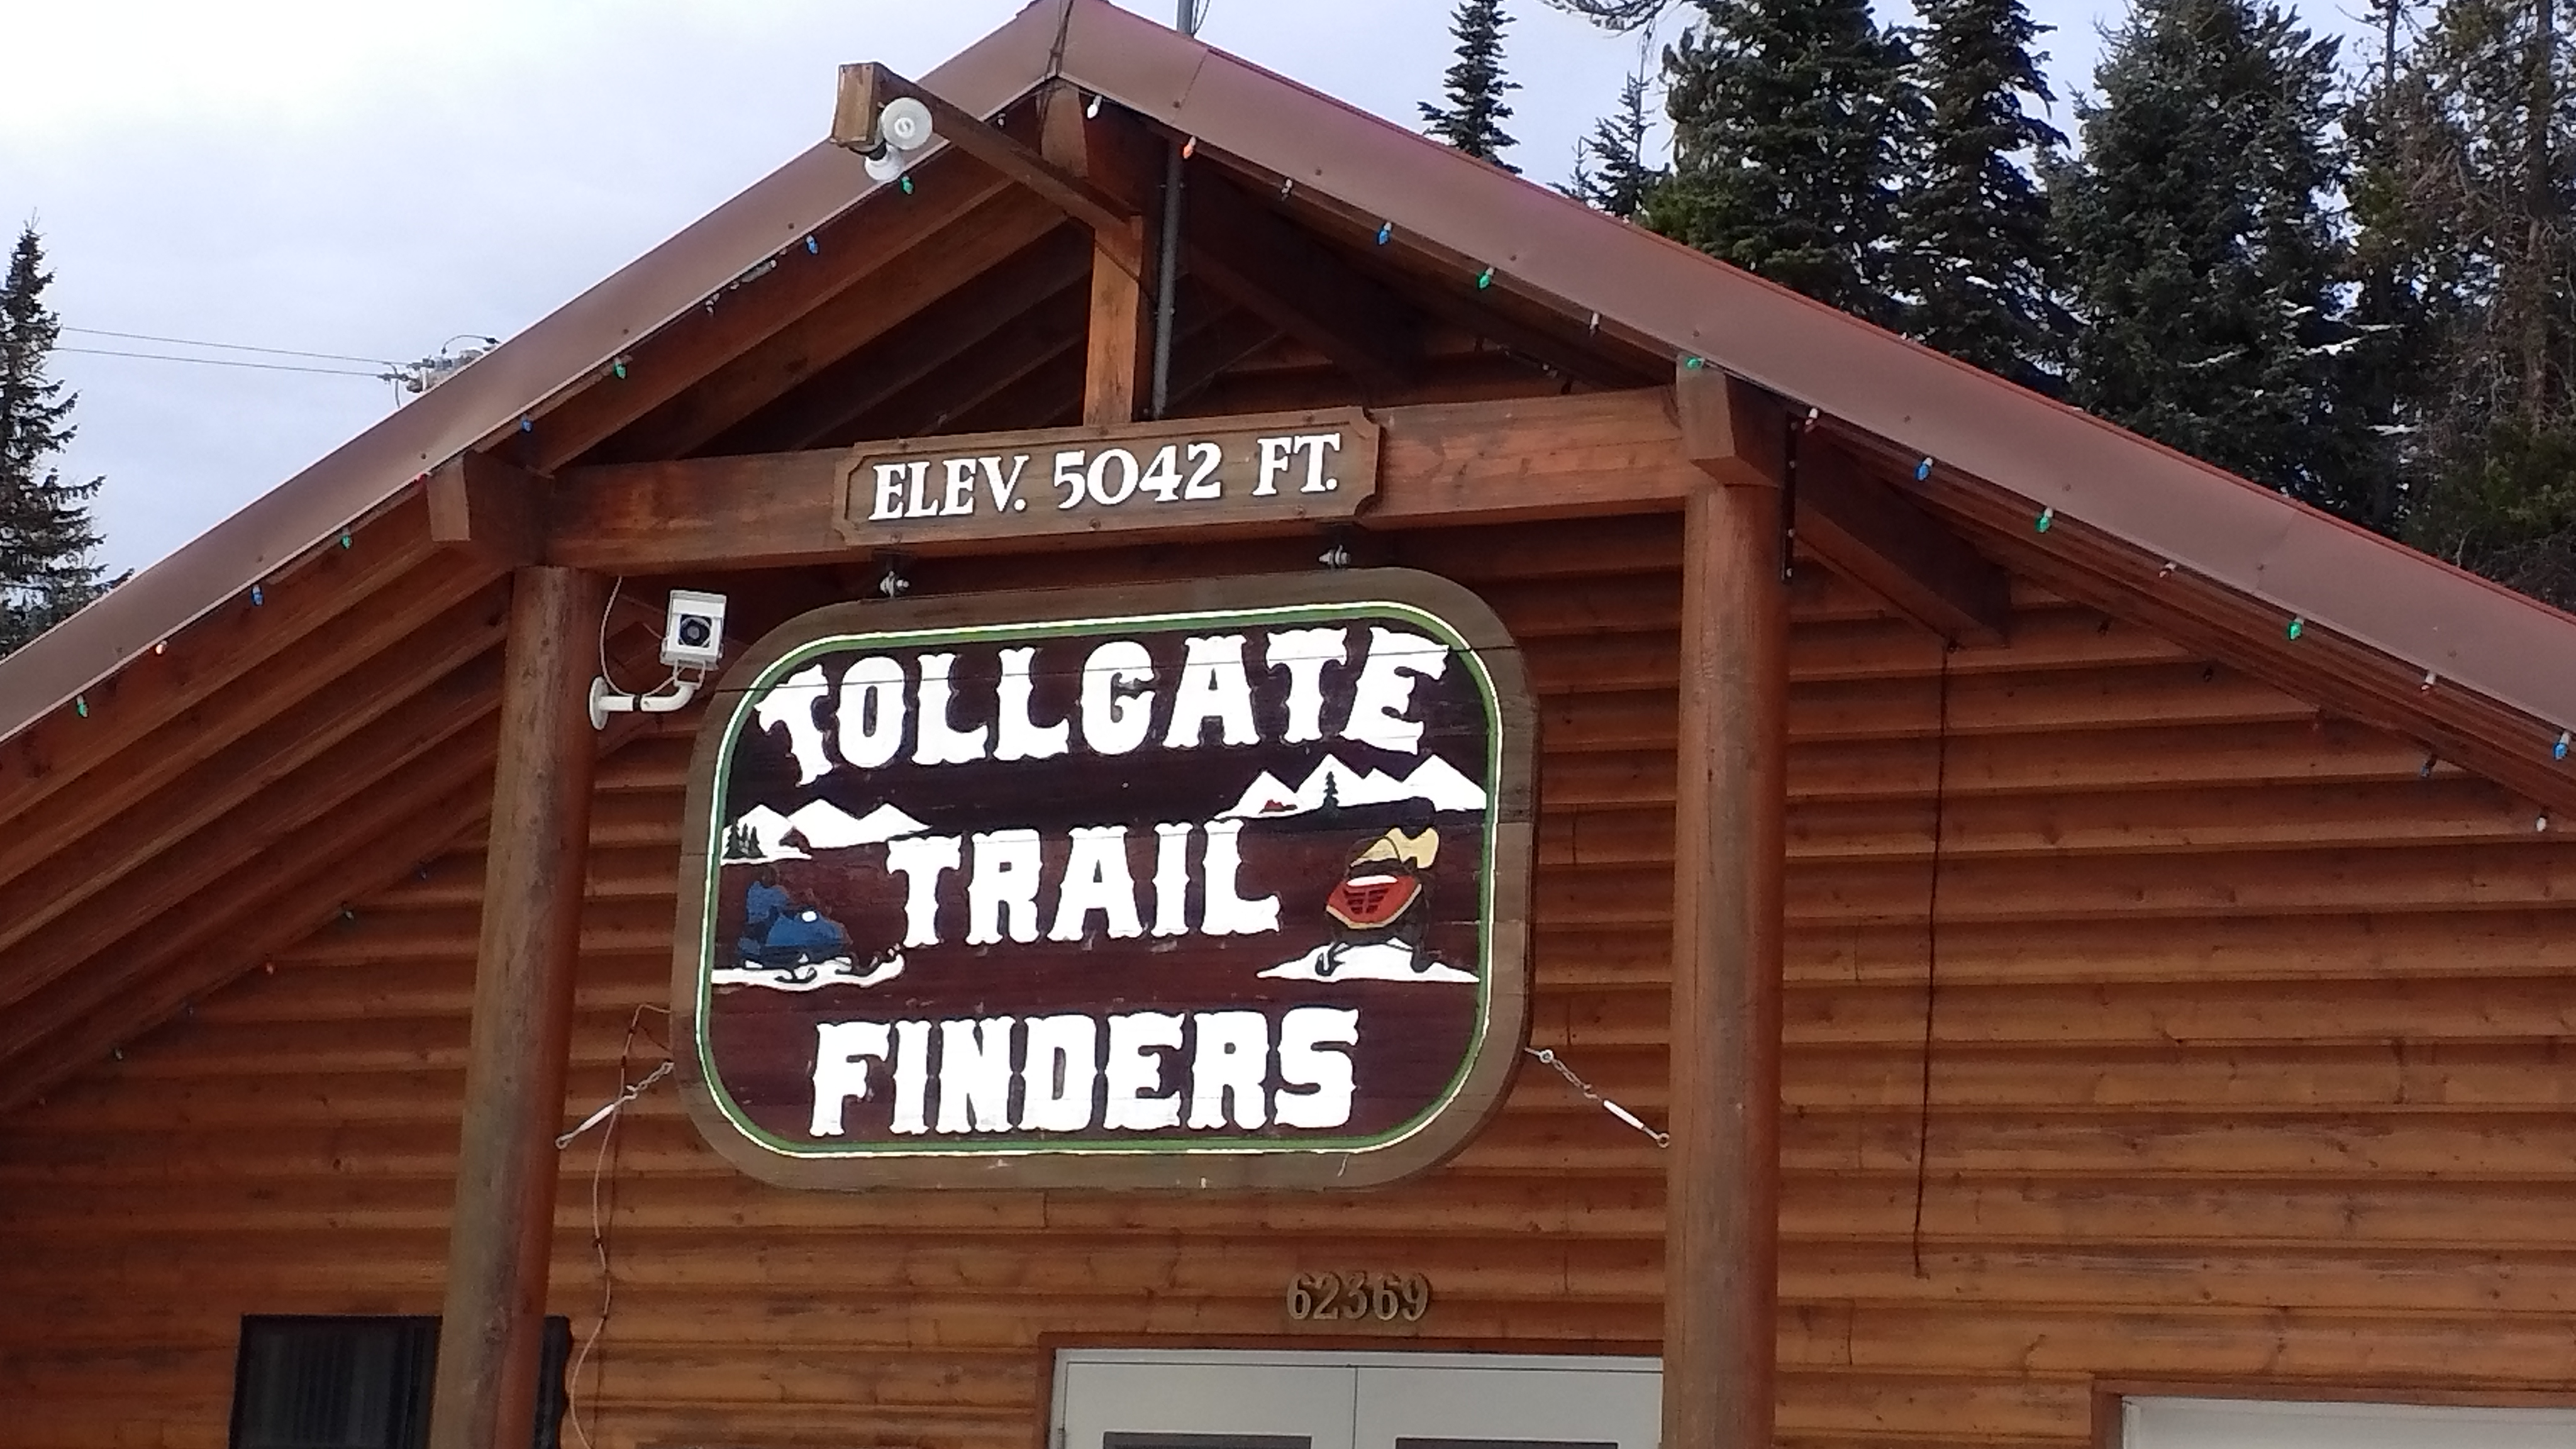 Tollgate Trail Finders